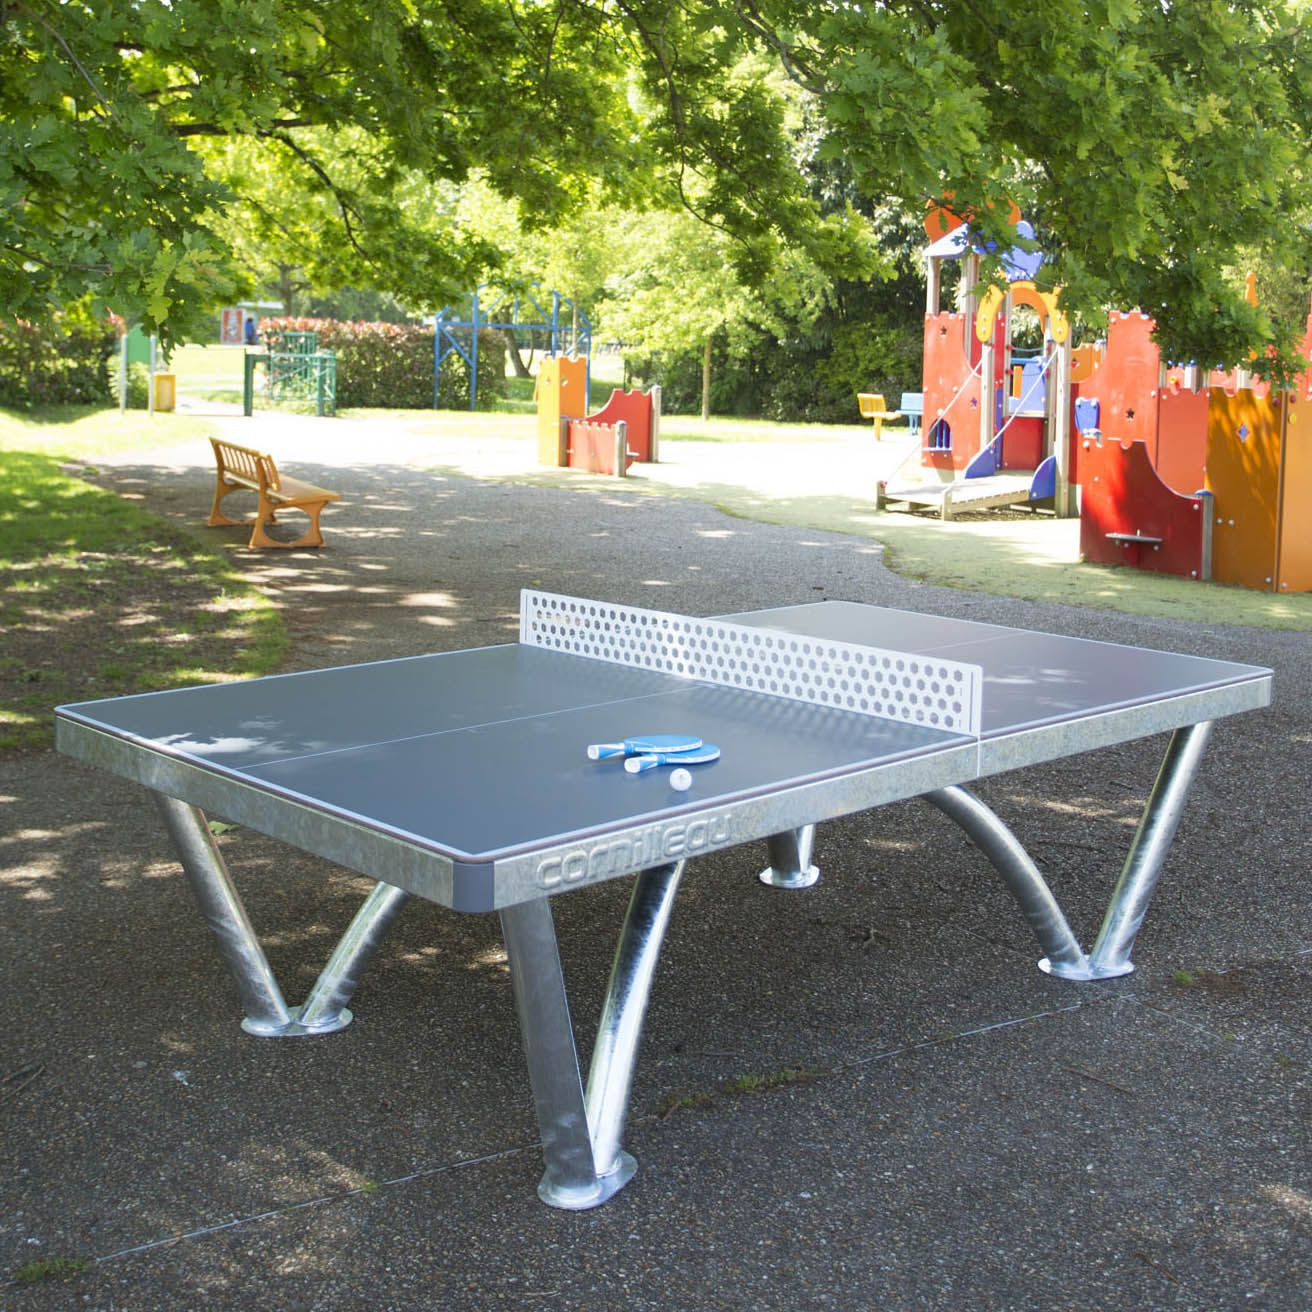 Cornilleau park permanent static outdoor table tennis table - Weatherproof table tennis table ...